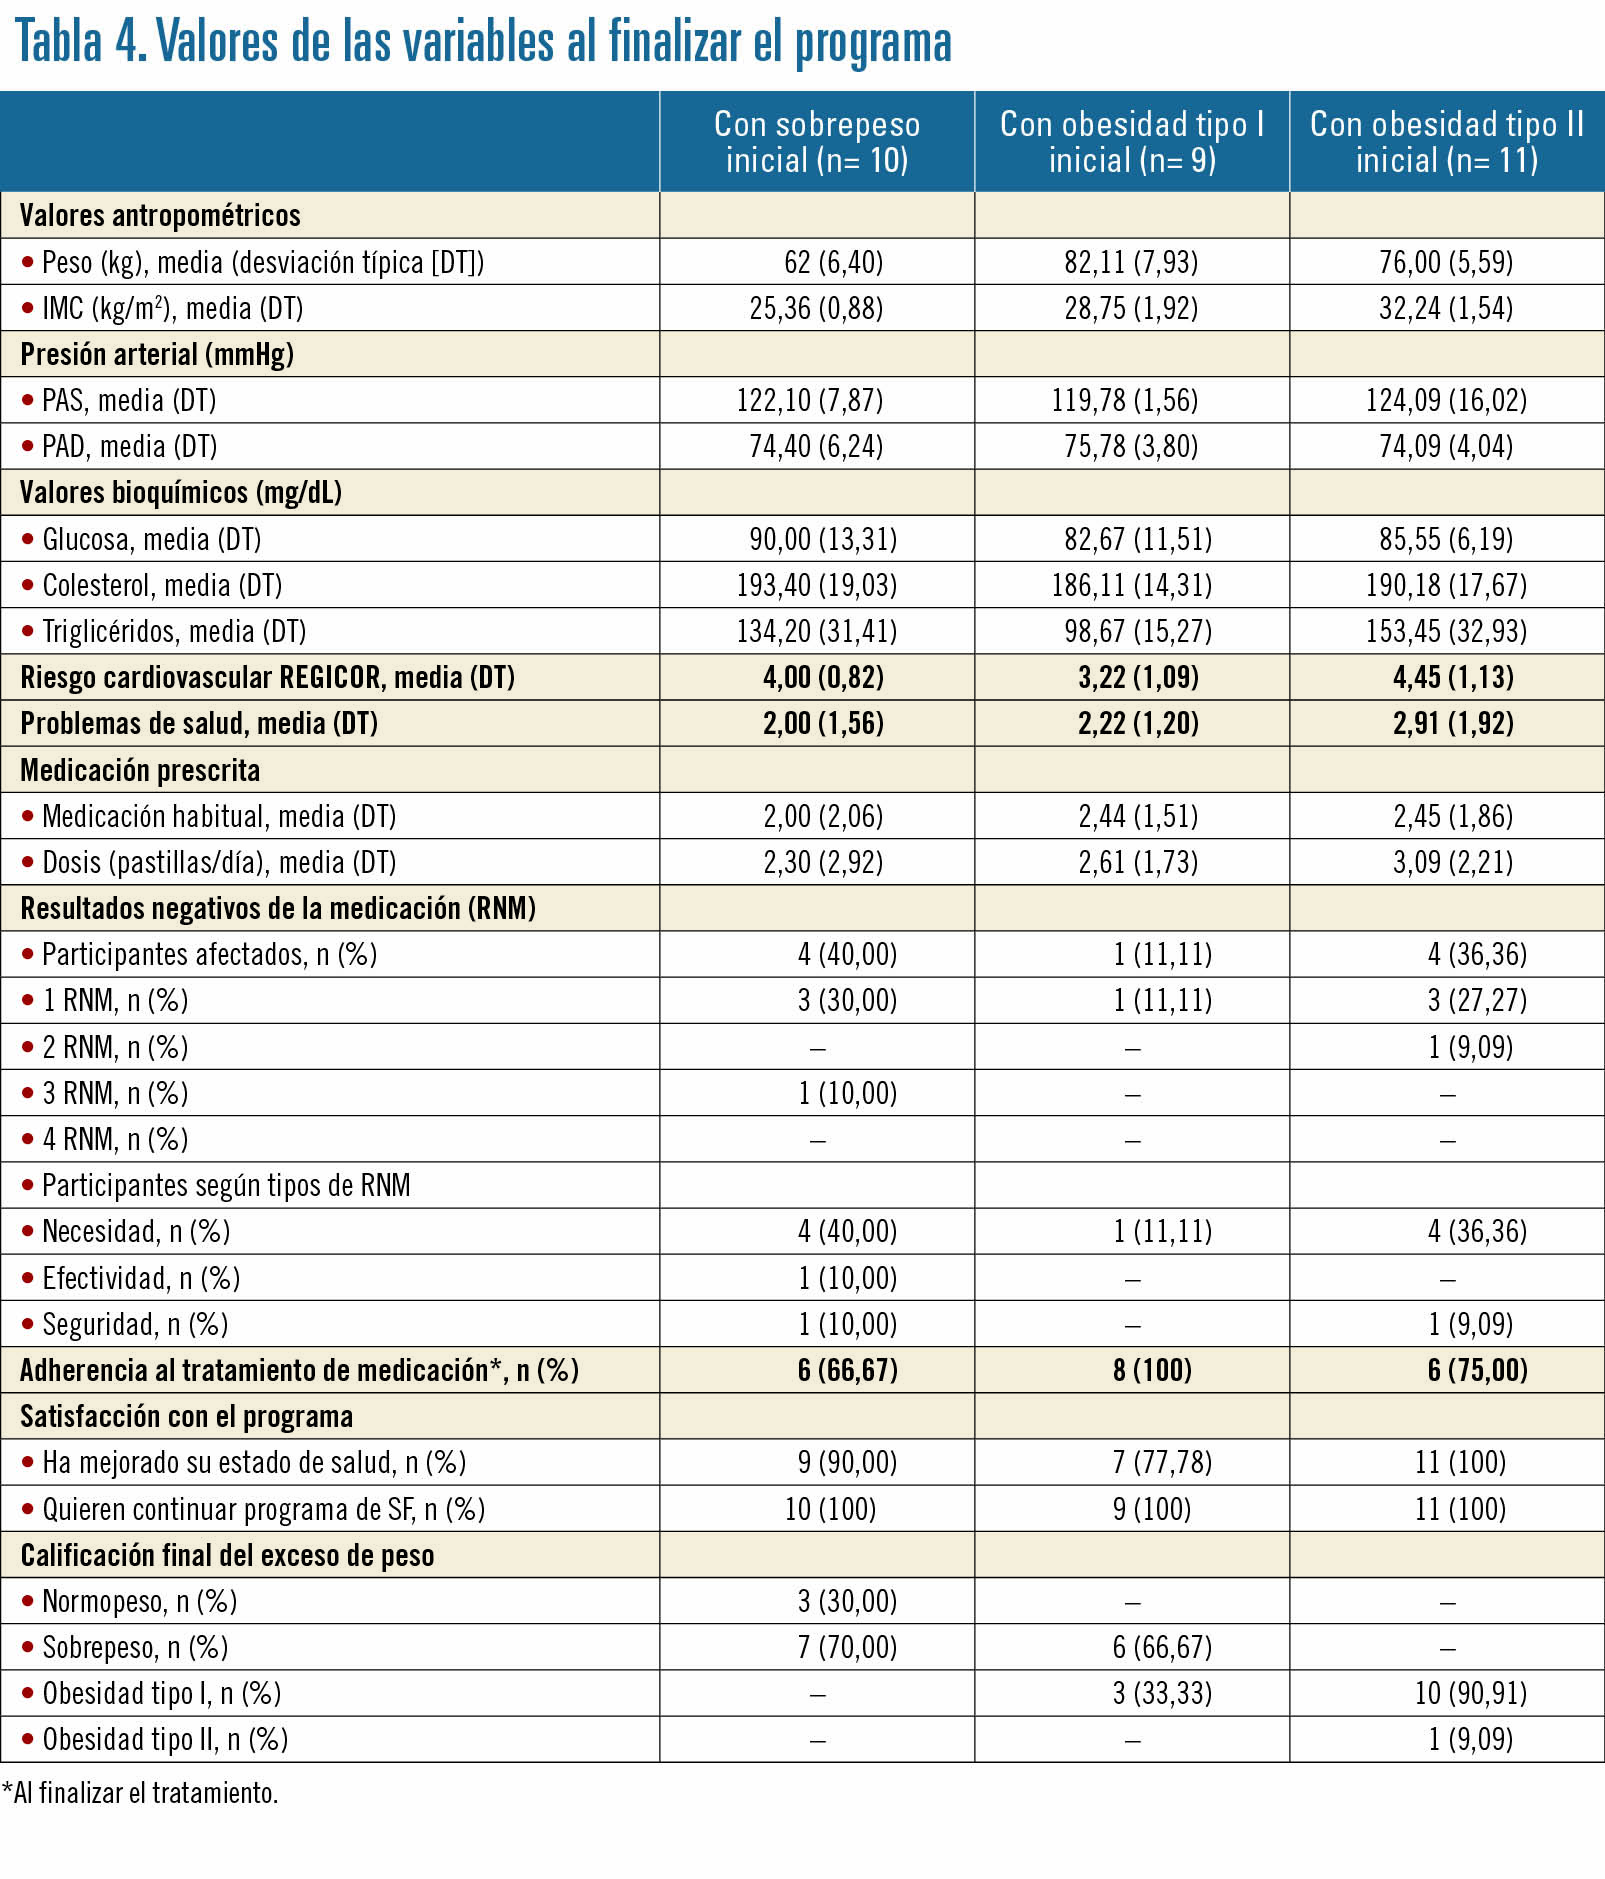 27 EF582 OFICINA FARMACIA ANALISIS tabla 4